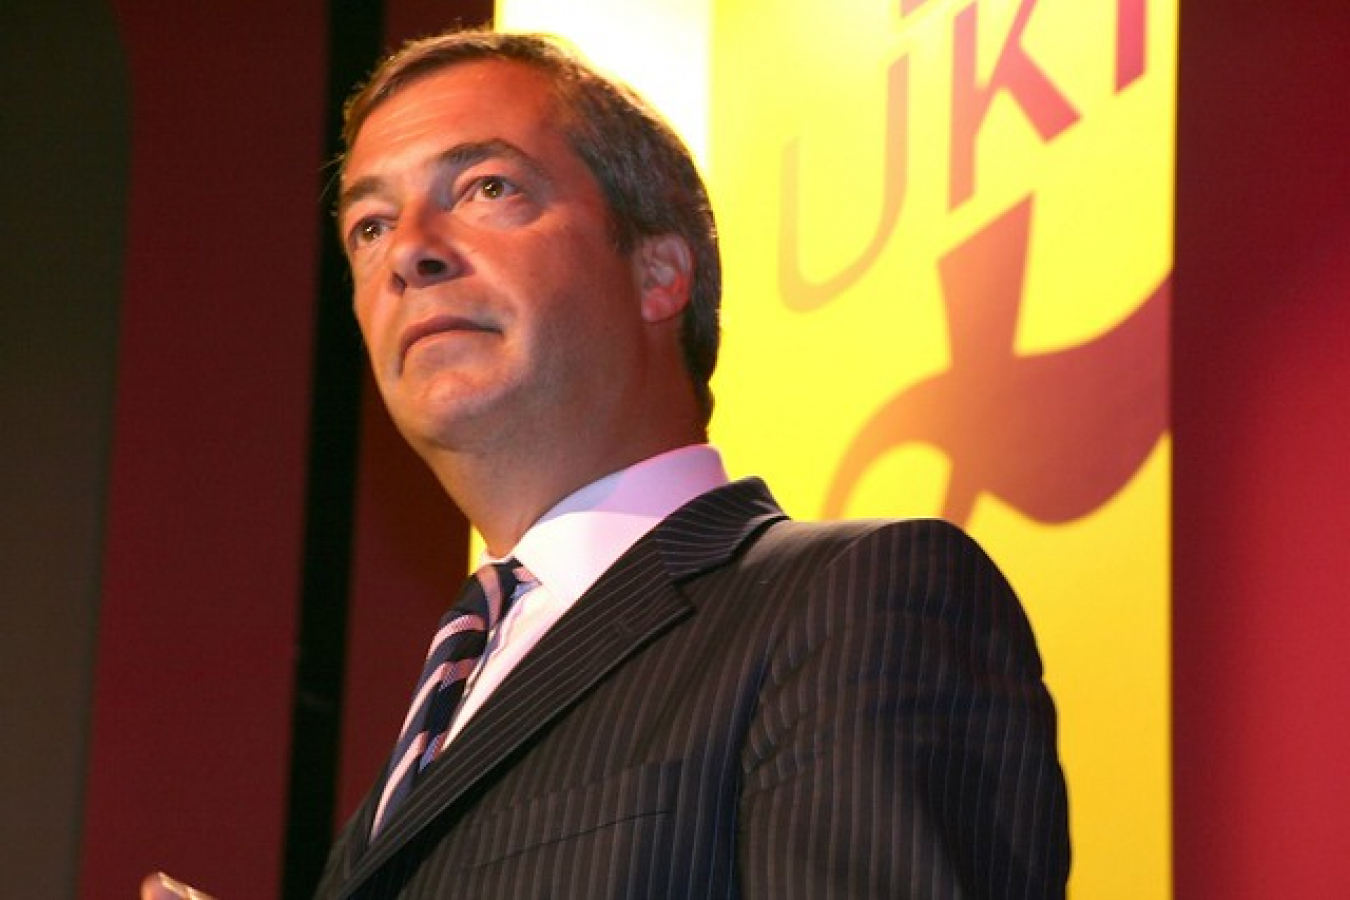 Nigel Farage of Brexit Party. Also founder of UKIP the UK Independence Party.